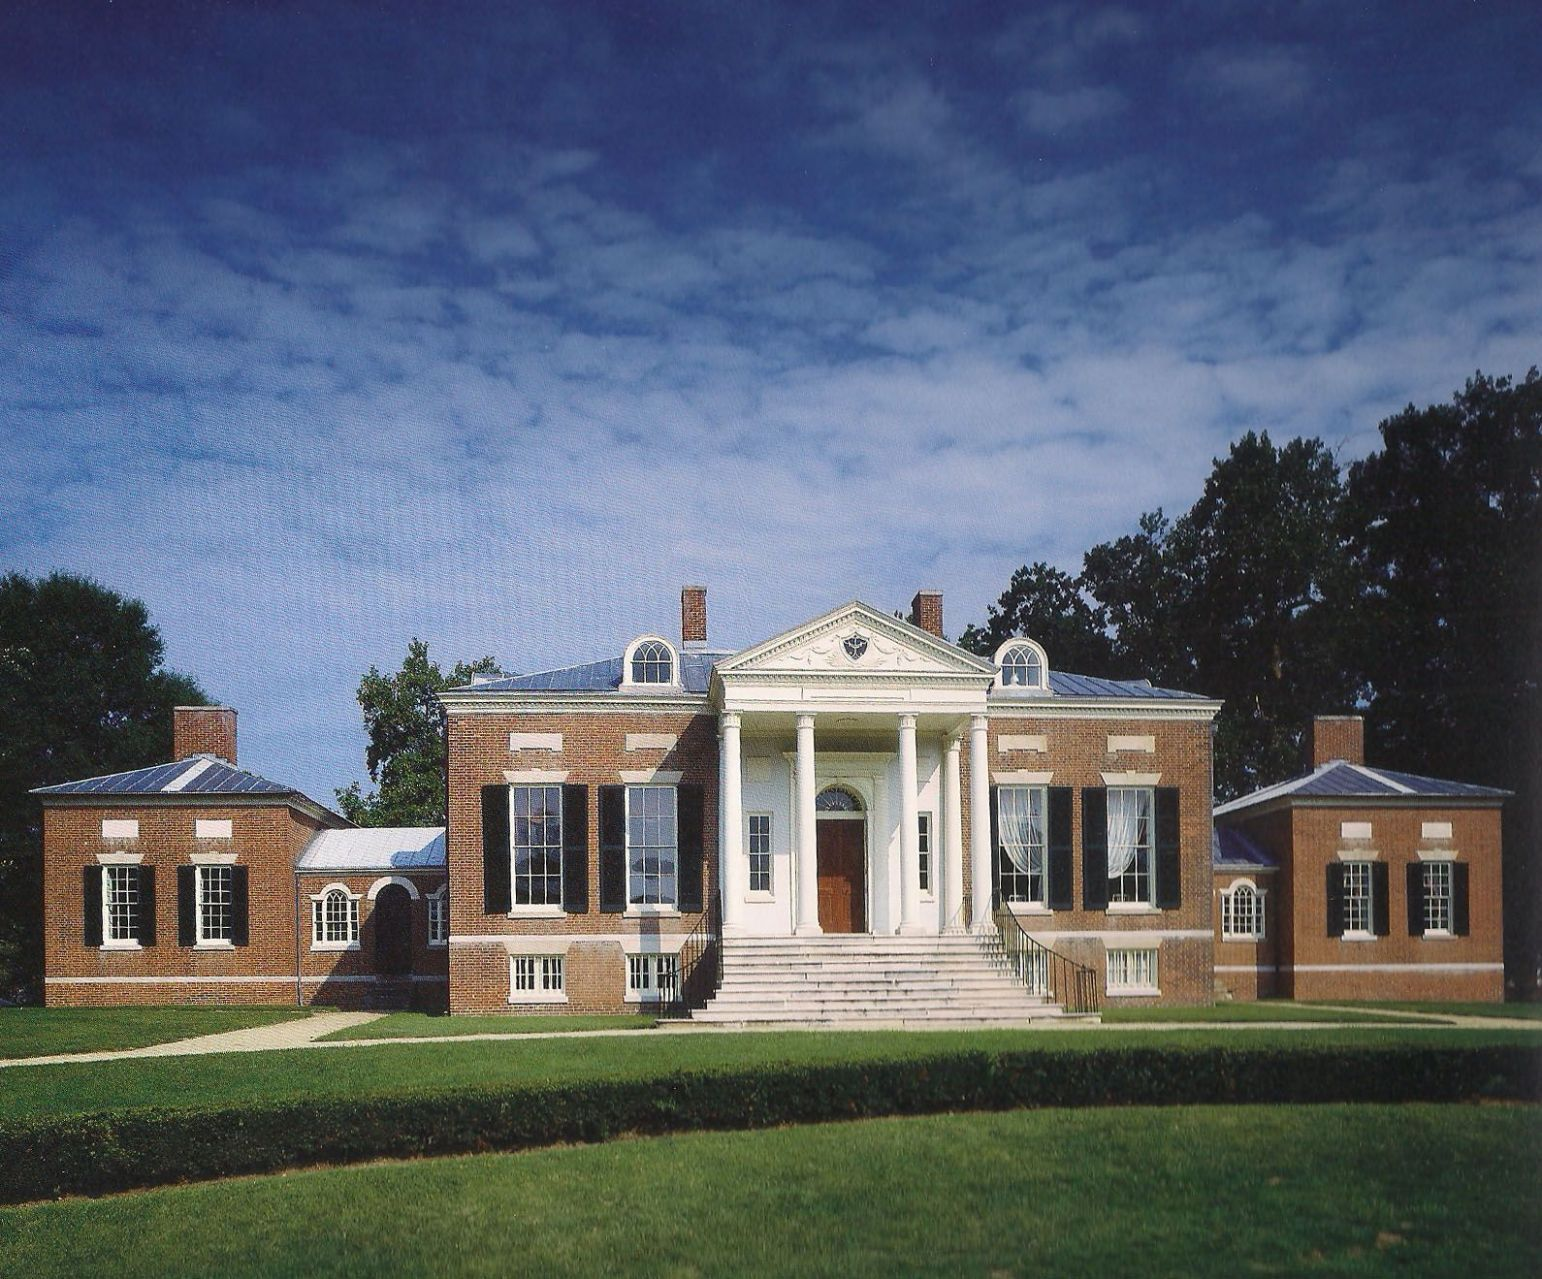 Homewood House, a five-part Palladian villa in inspiration, was ..